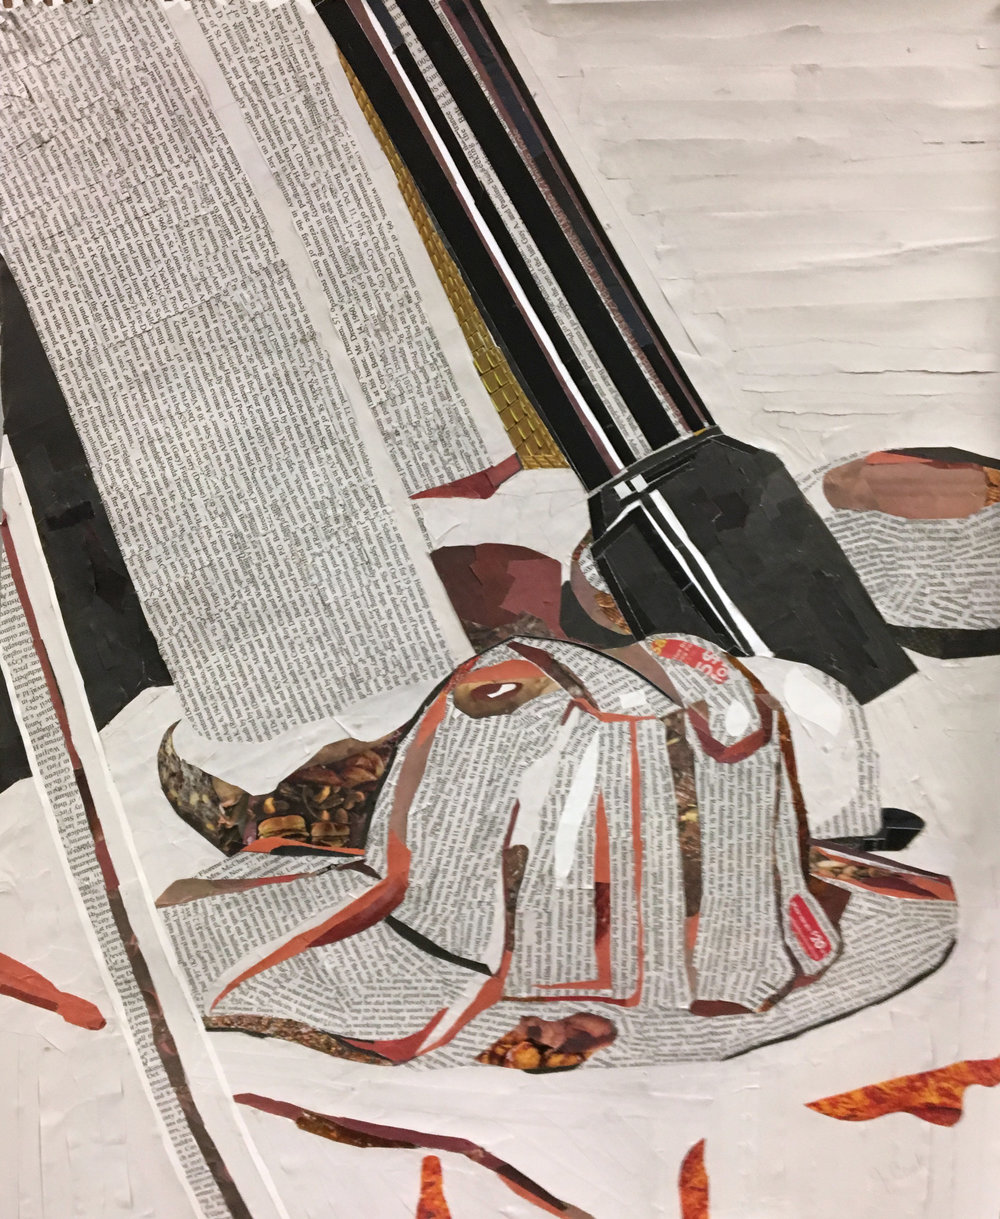 "Drawing I , Fall 2018, newspaper collage on paper, 24"" x 18"""